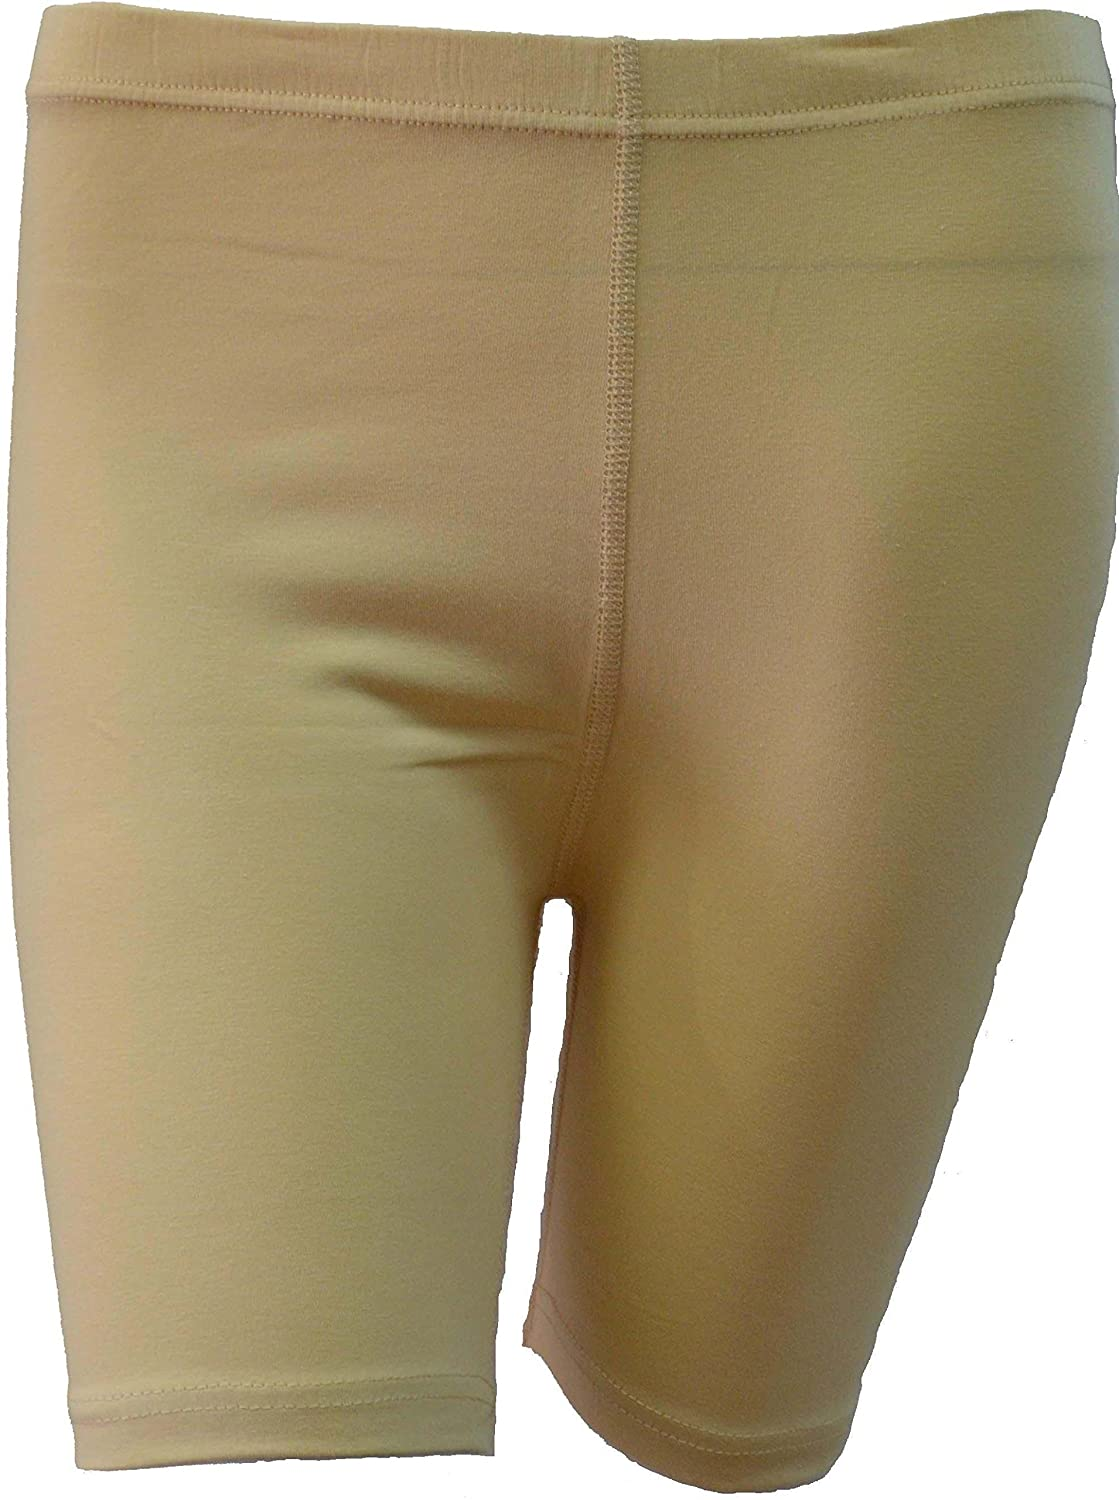 Women's Stretchy Cotton Lycra Above Knee Short Active Leggings